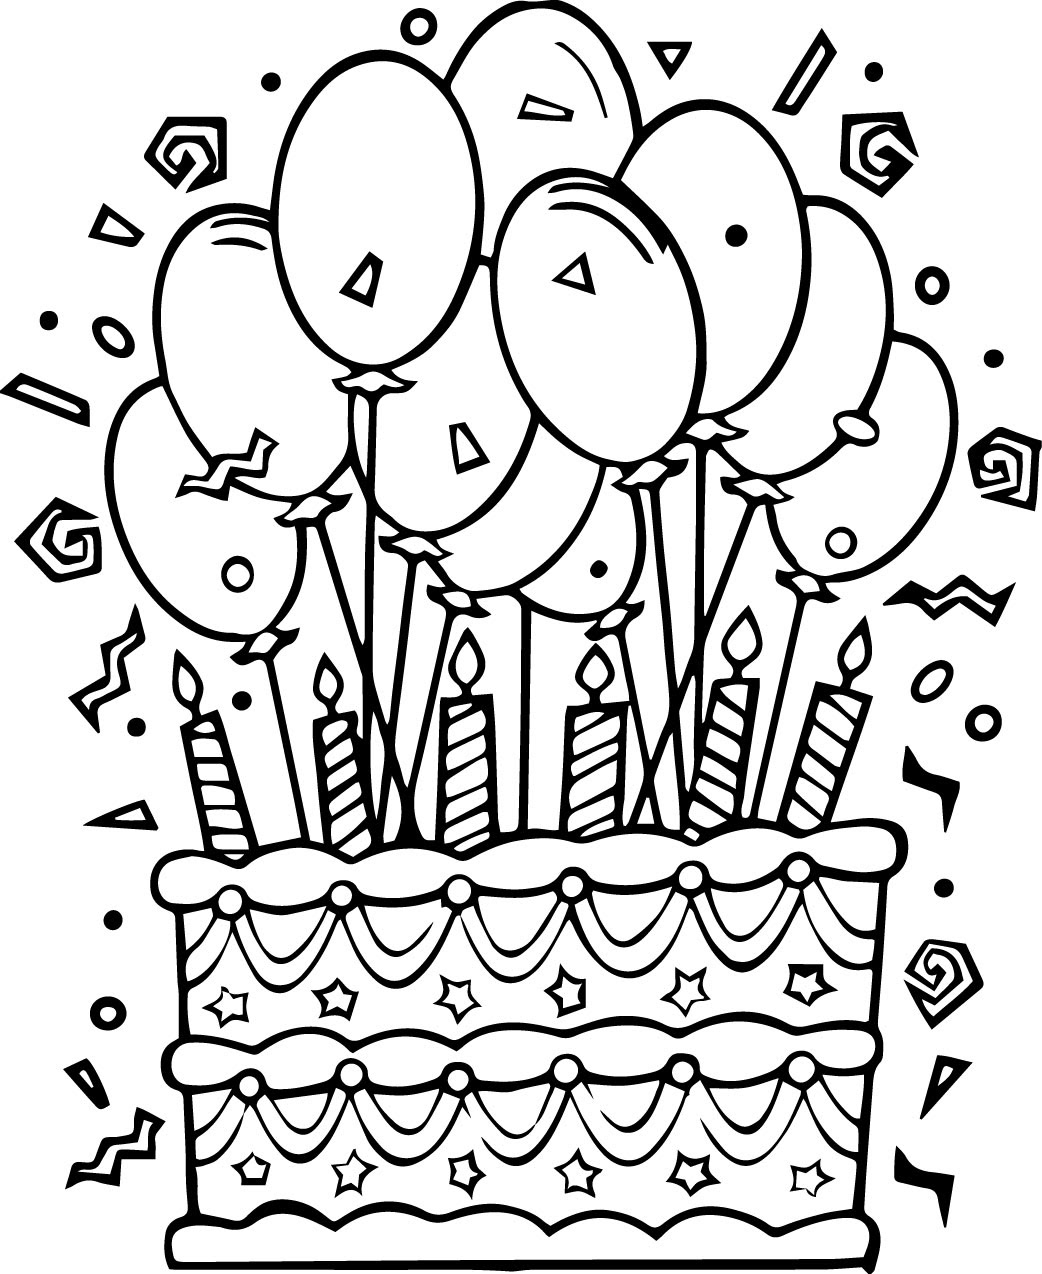 Birthday Cake Coloring Pages | Wecoloringpage.com